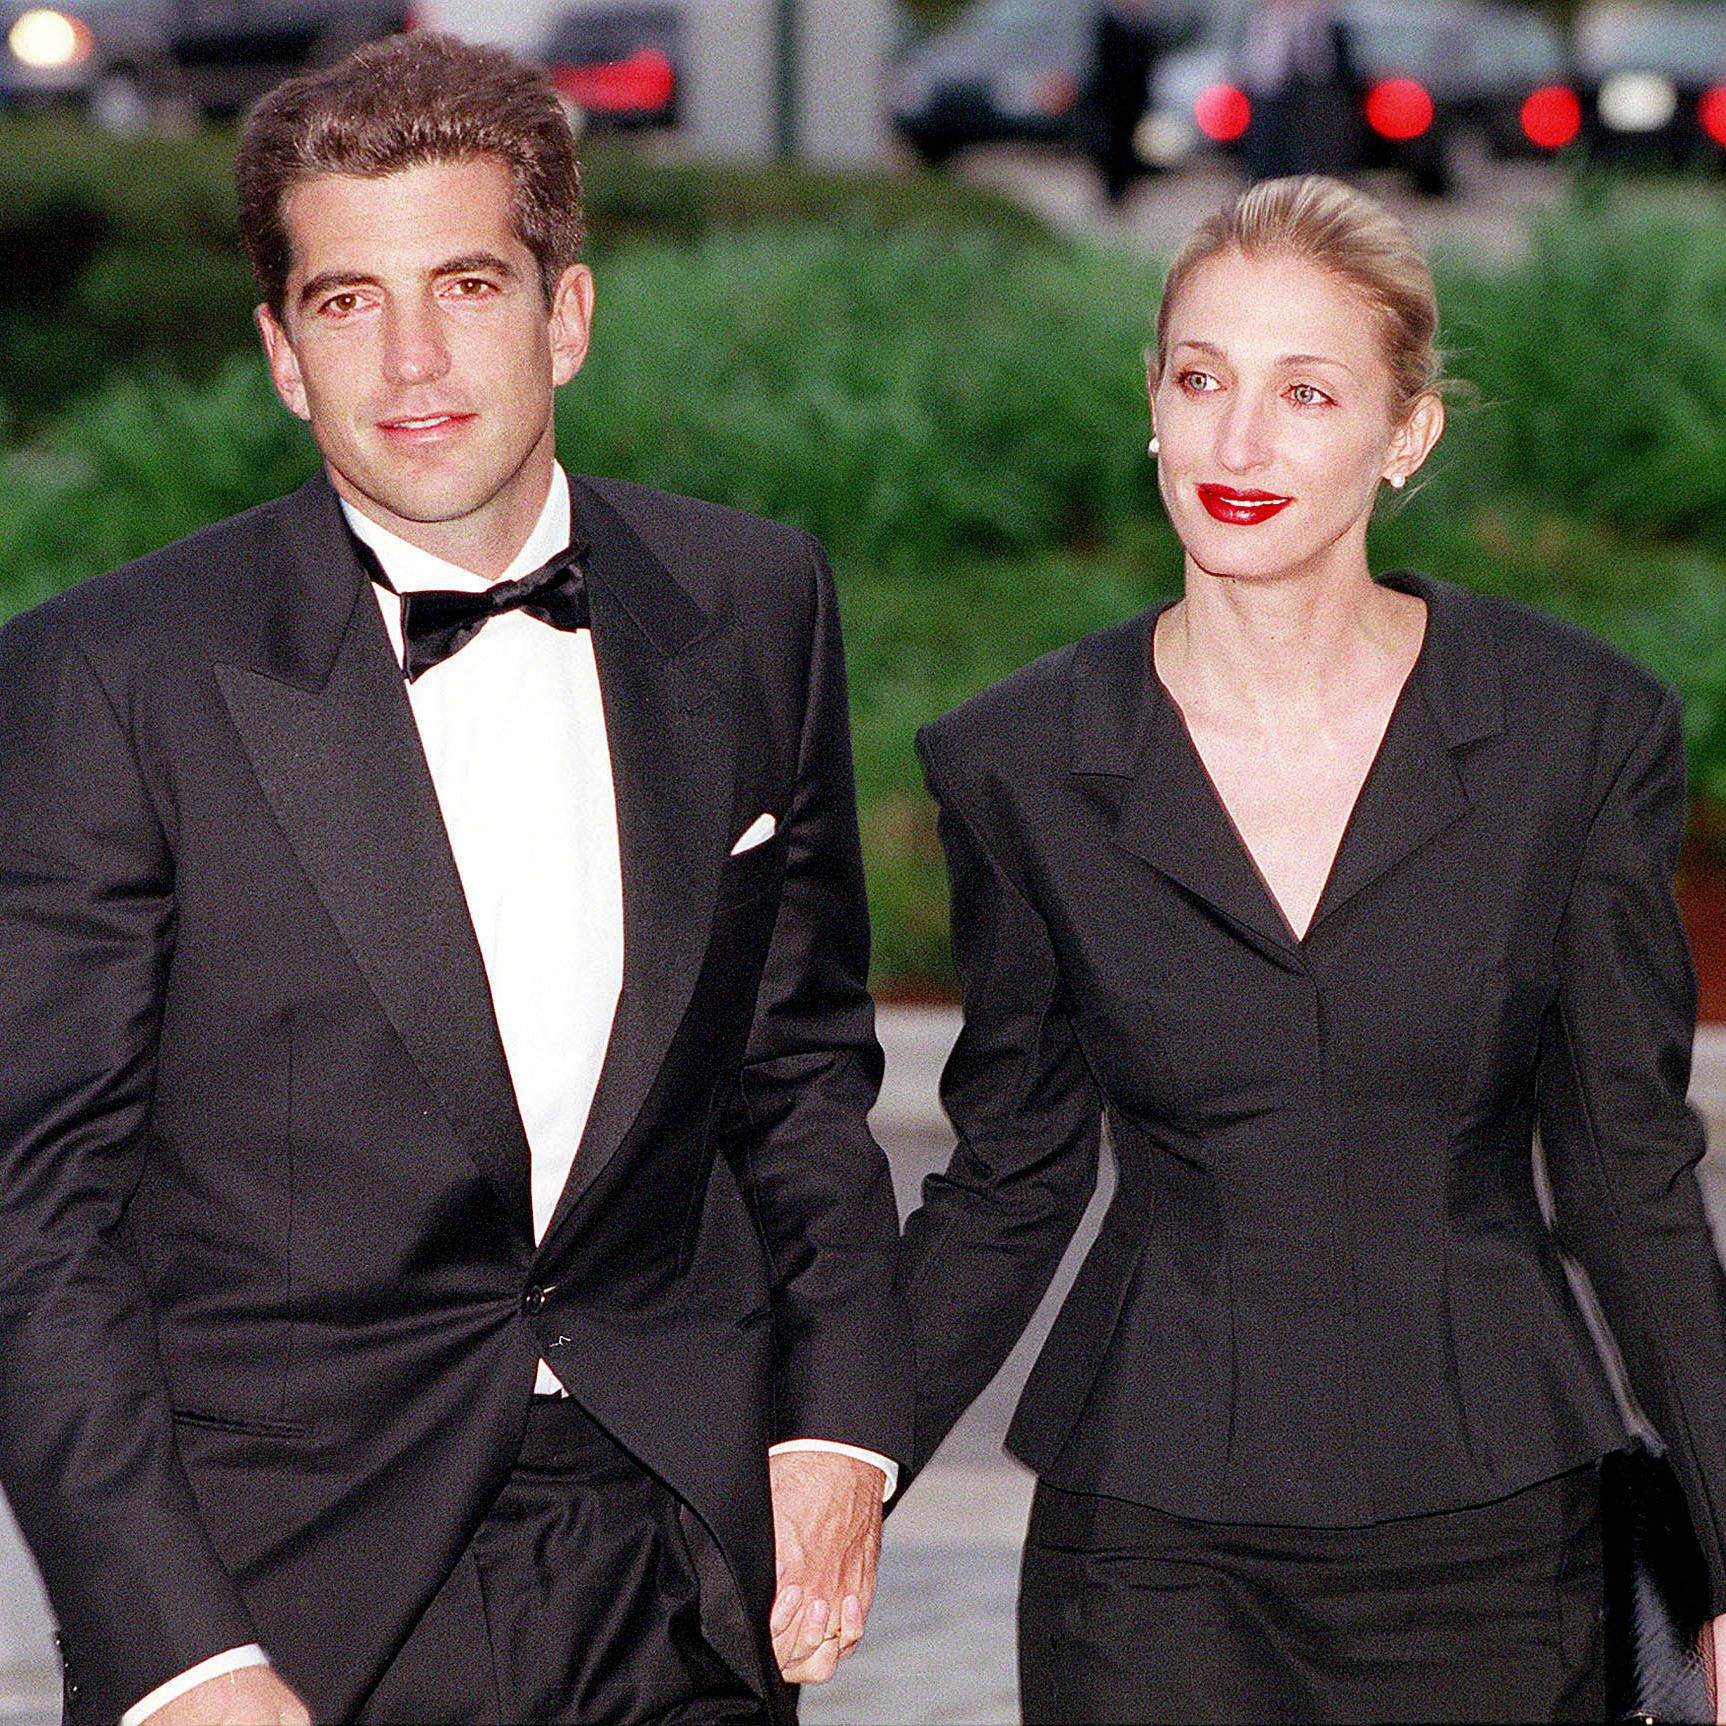 Never Before Seen Footage From John F Kennedy Jr And Carolyn Bessette Kennedy S Wedding To Air In 2 Hour Special